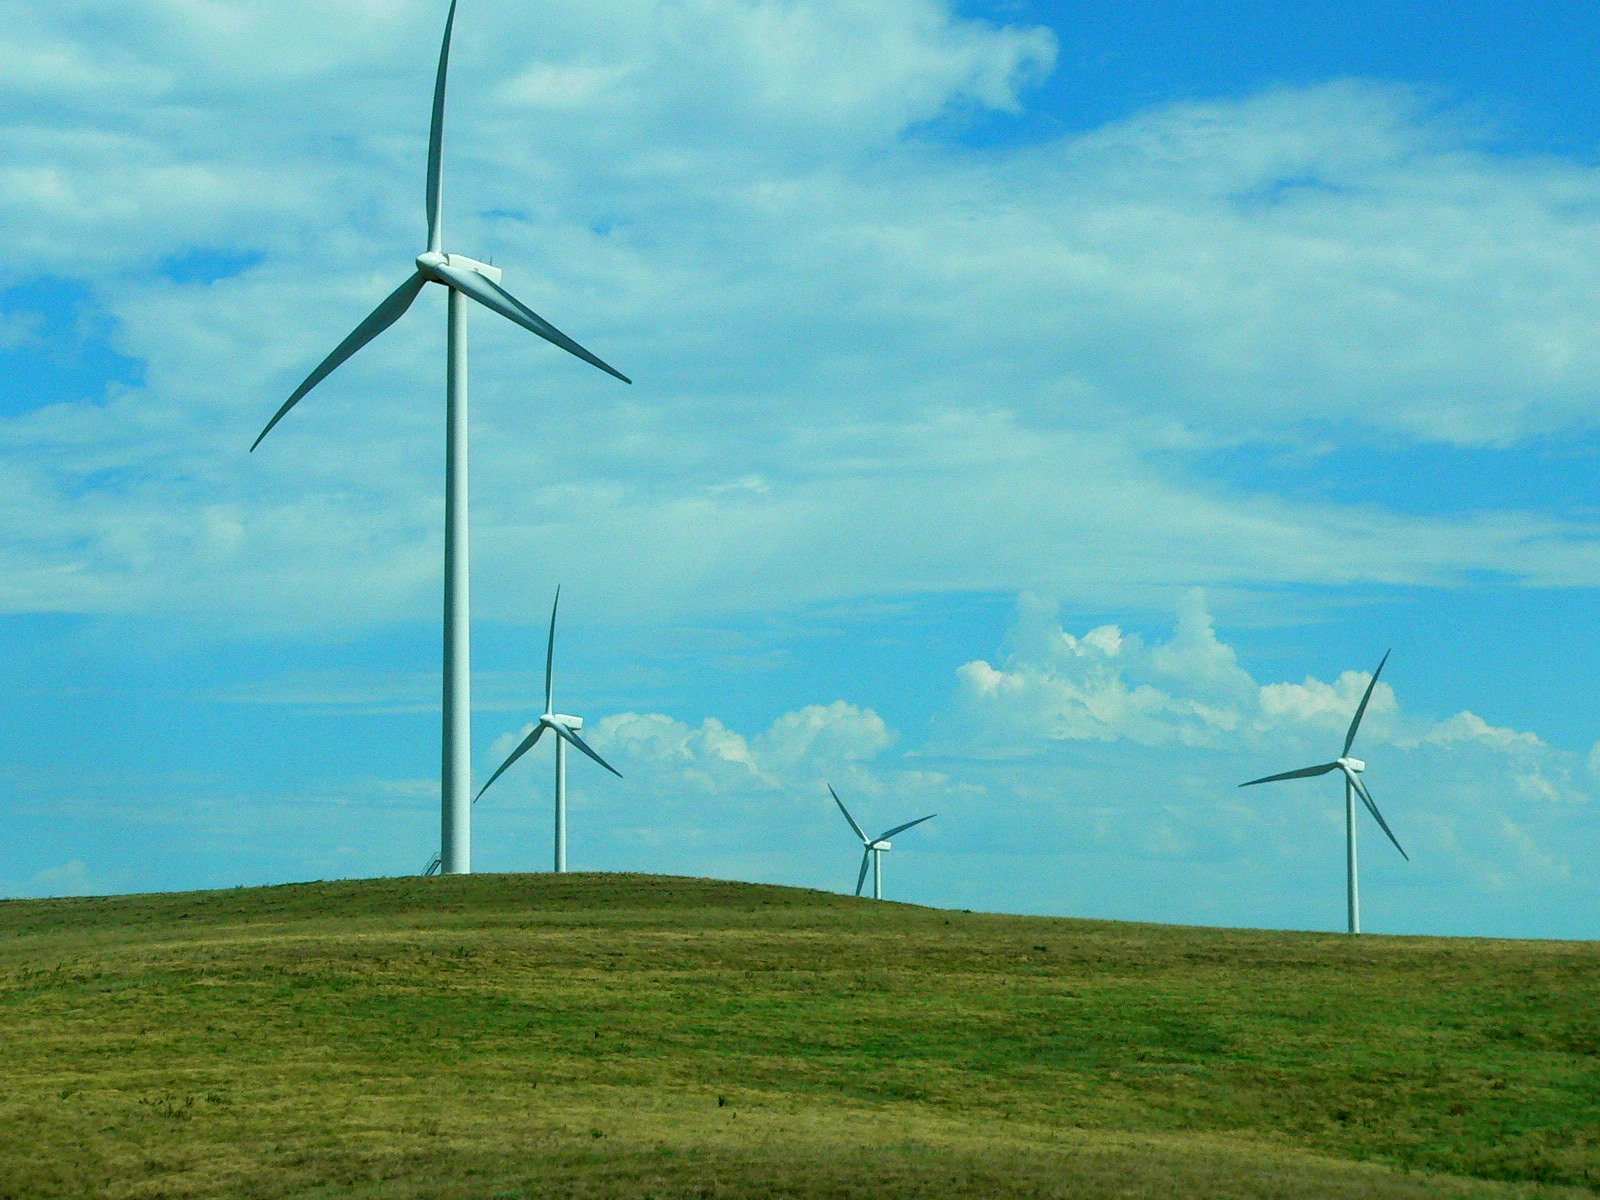 wind farm Learn more about wind power our plans include 12 new wind farms in seven states that will add nearly 3,700 megawatts of new wind capacity to our system.